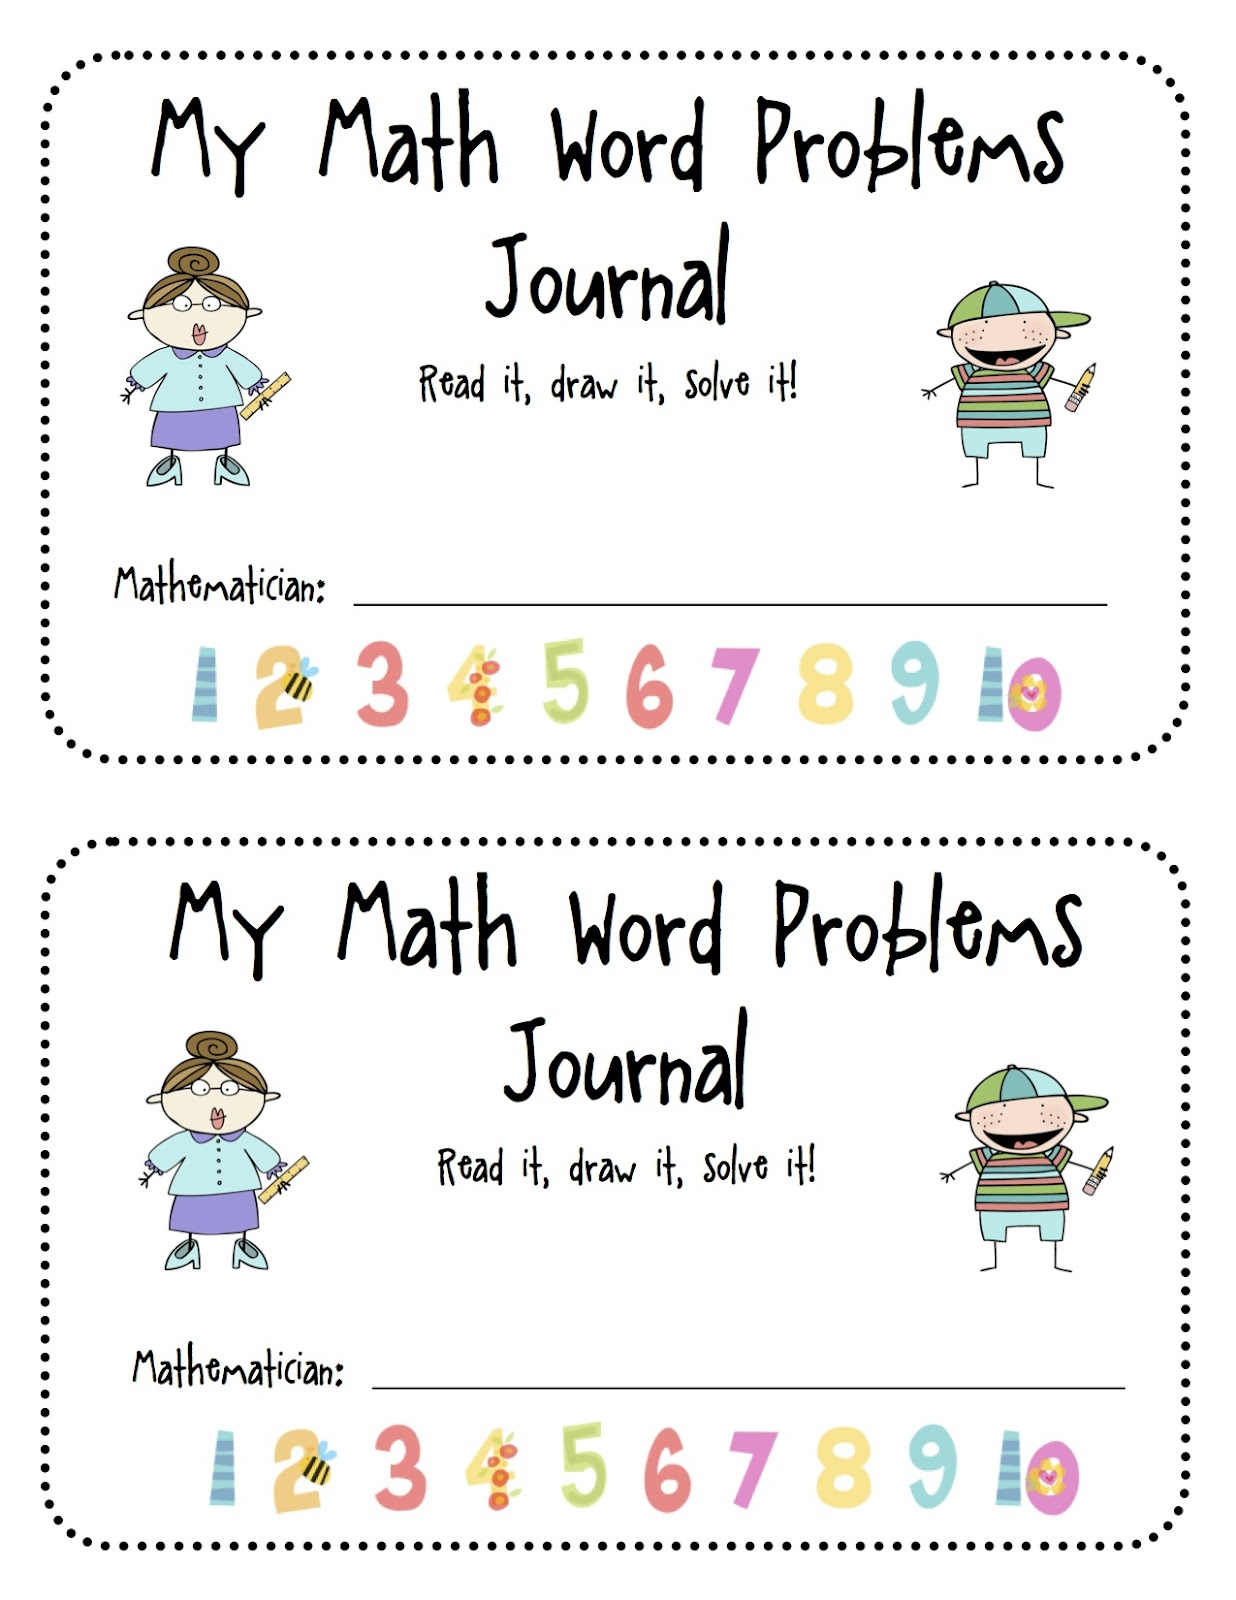 Kindertastic Math Word Problems